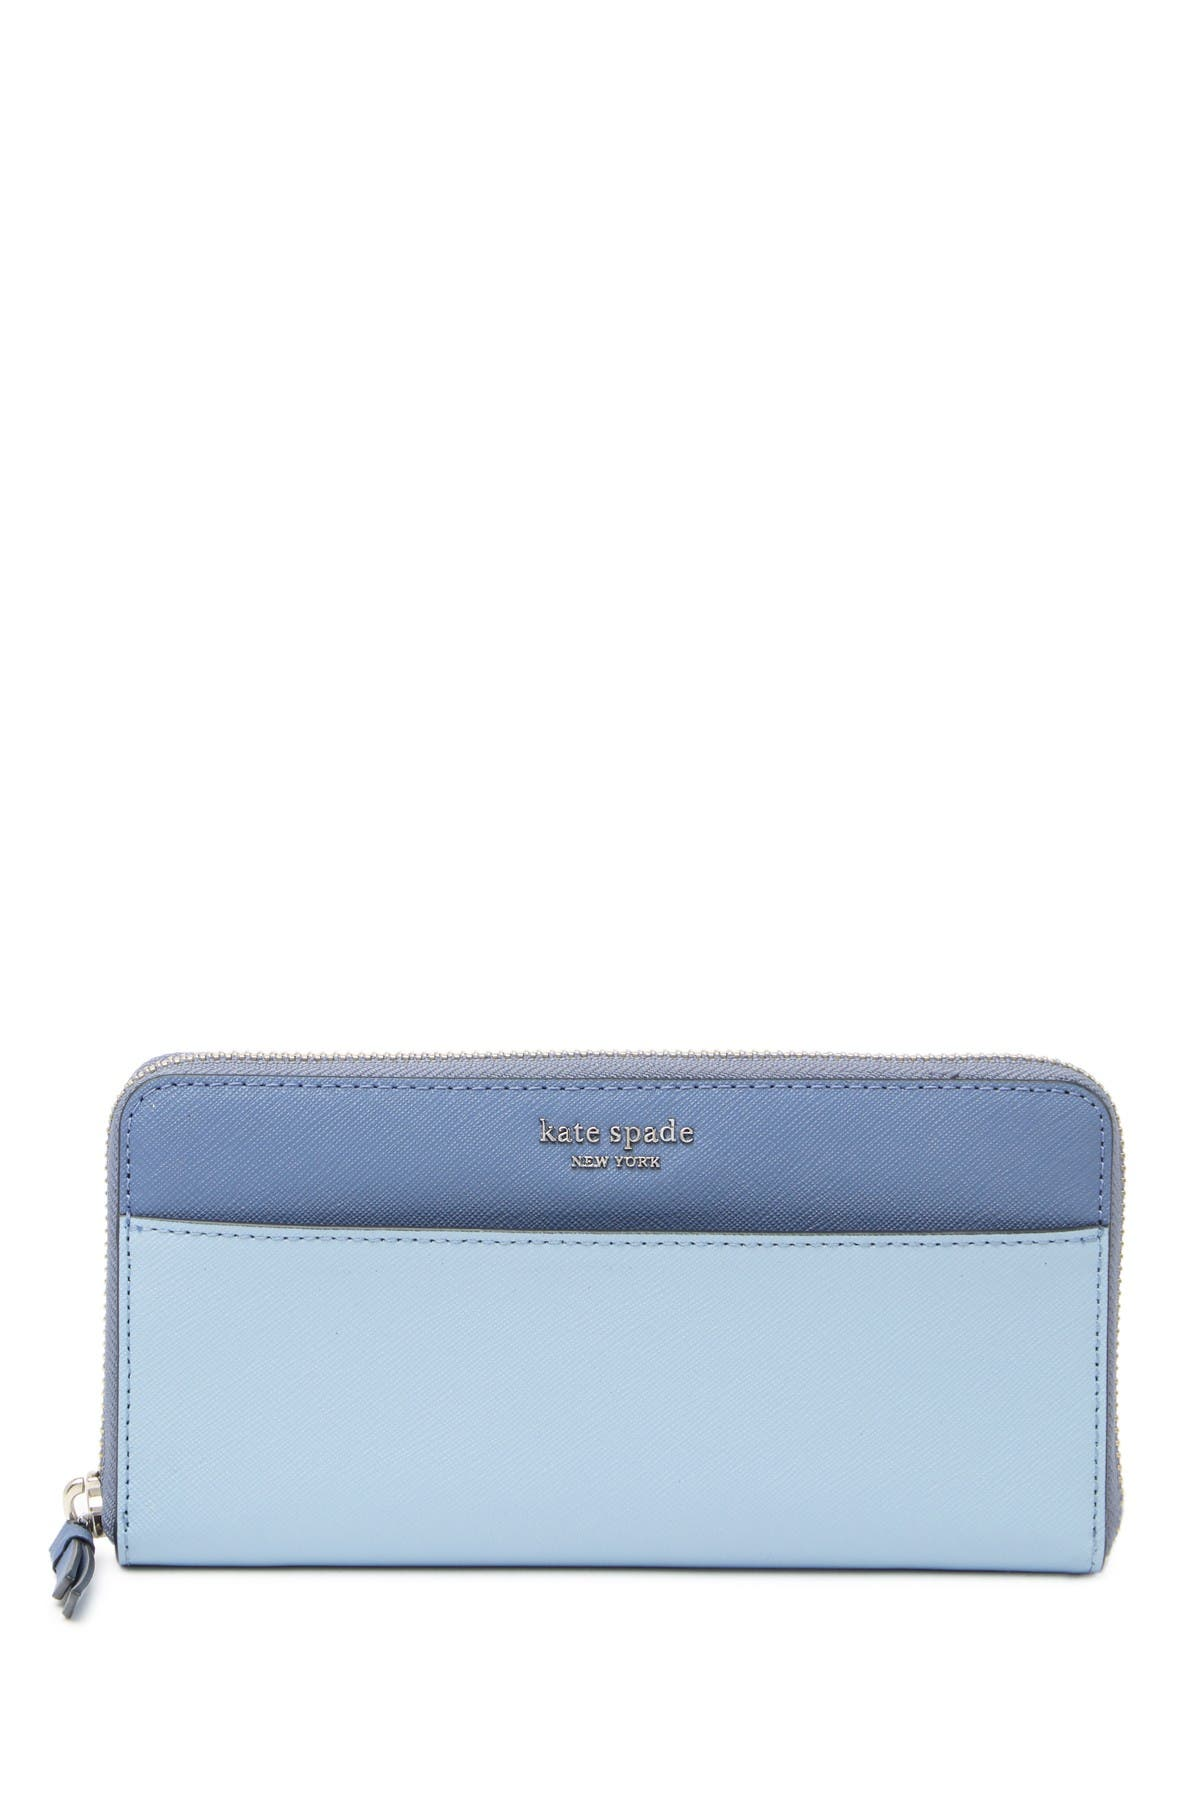 Image of kate spade new york leather cameron large continental wallet